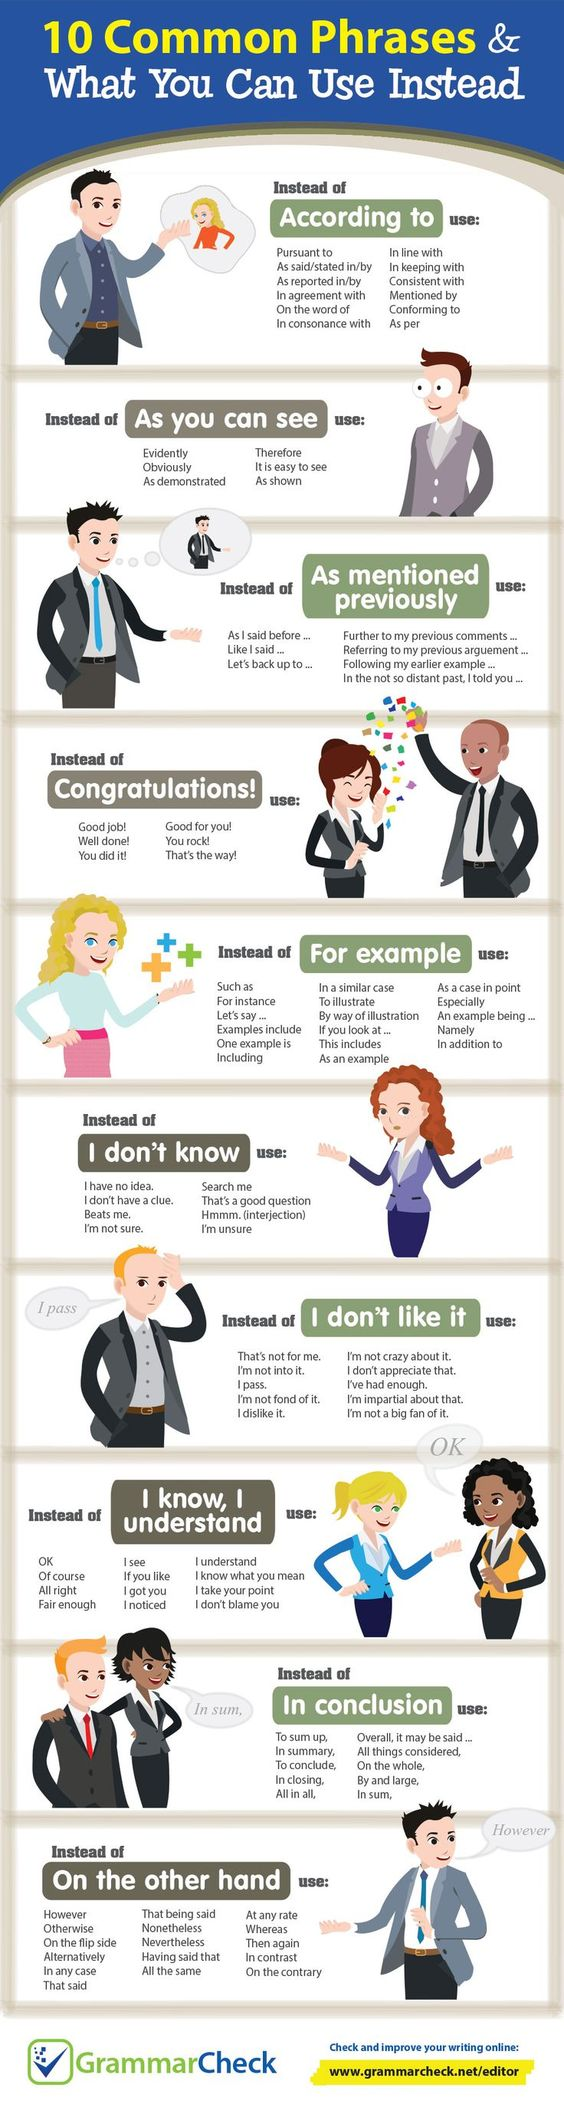 10 Common Phrases & What You Can Use Instead (Infographic):